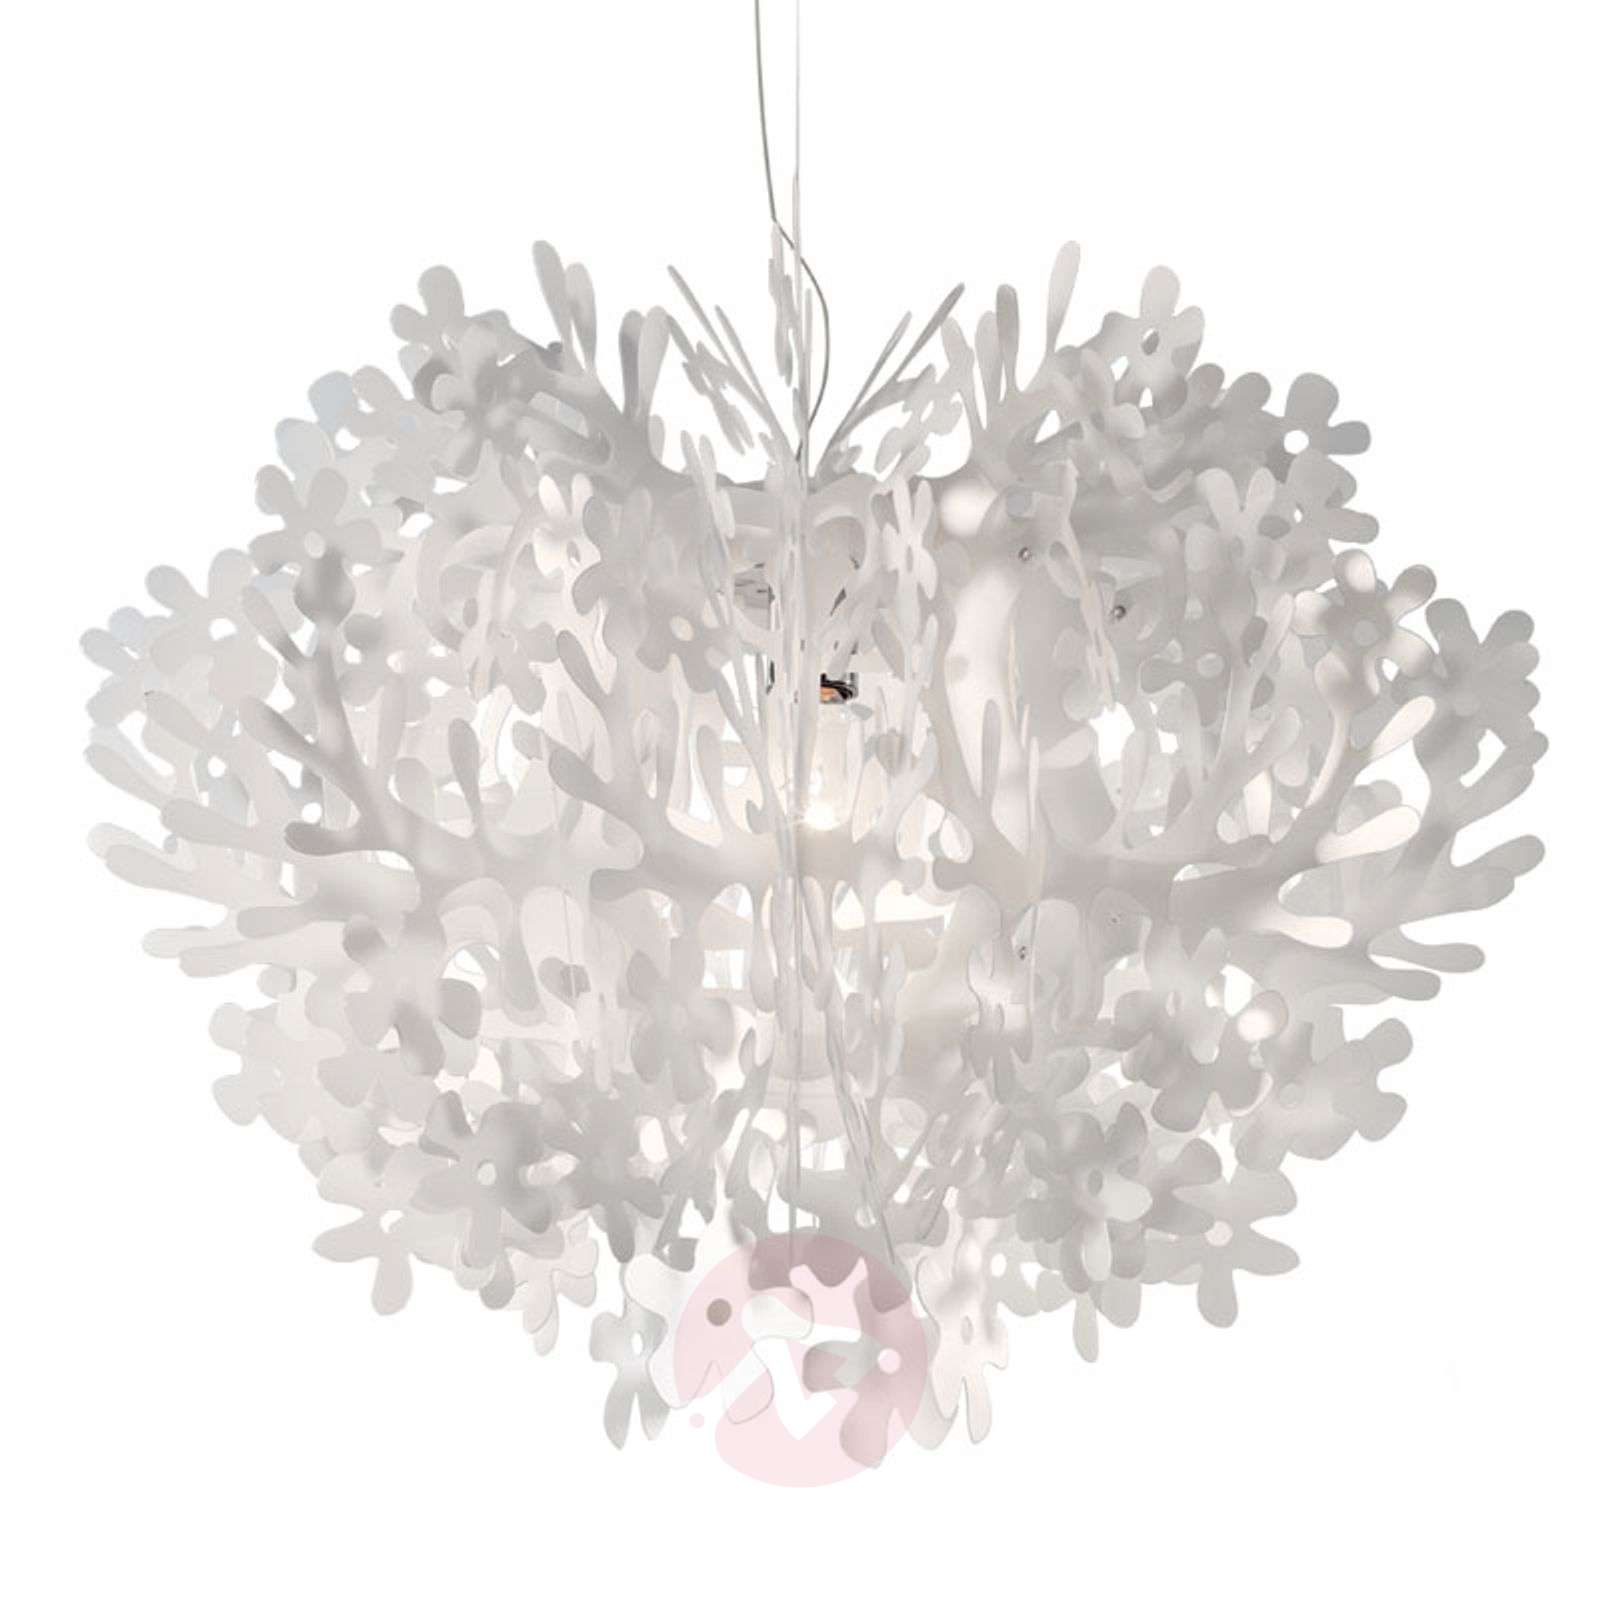 Brilliant Fiorella hanging light-8503191-01